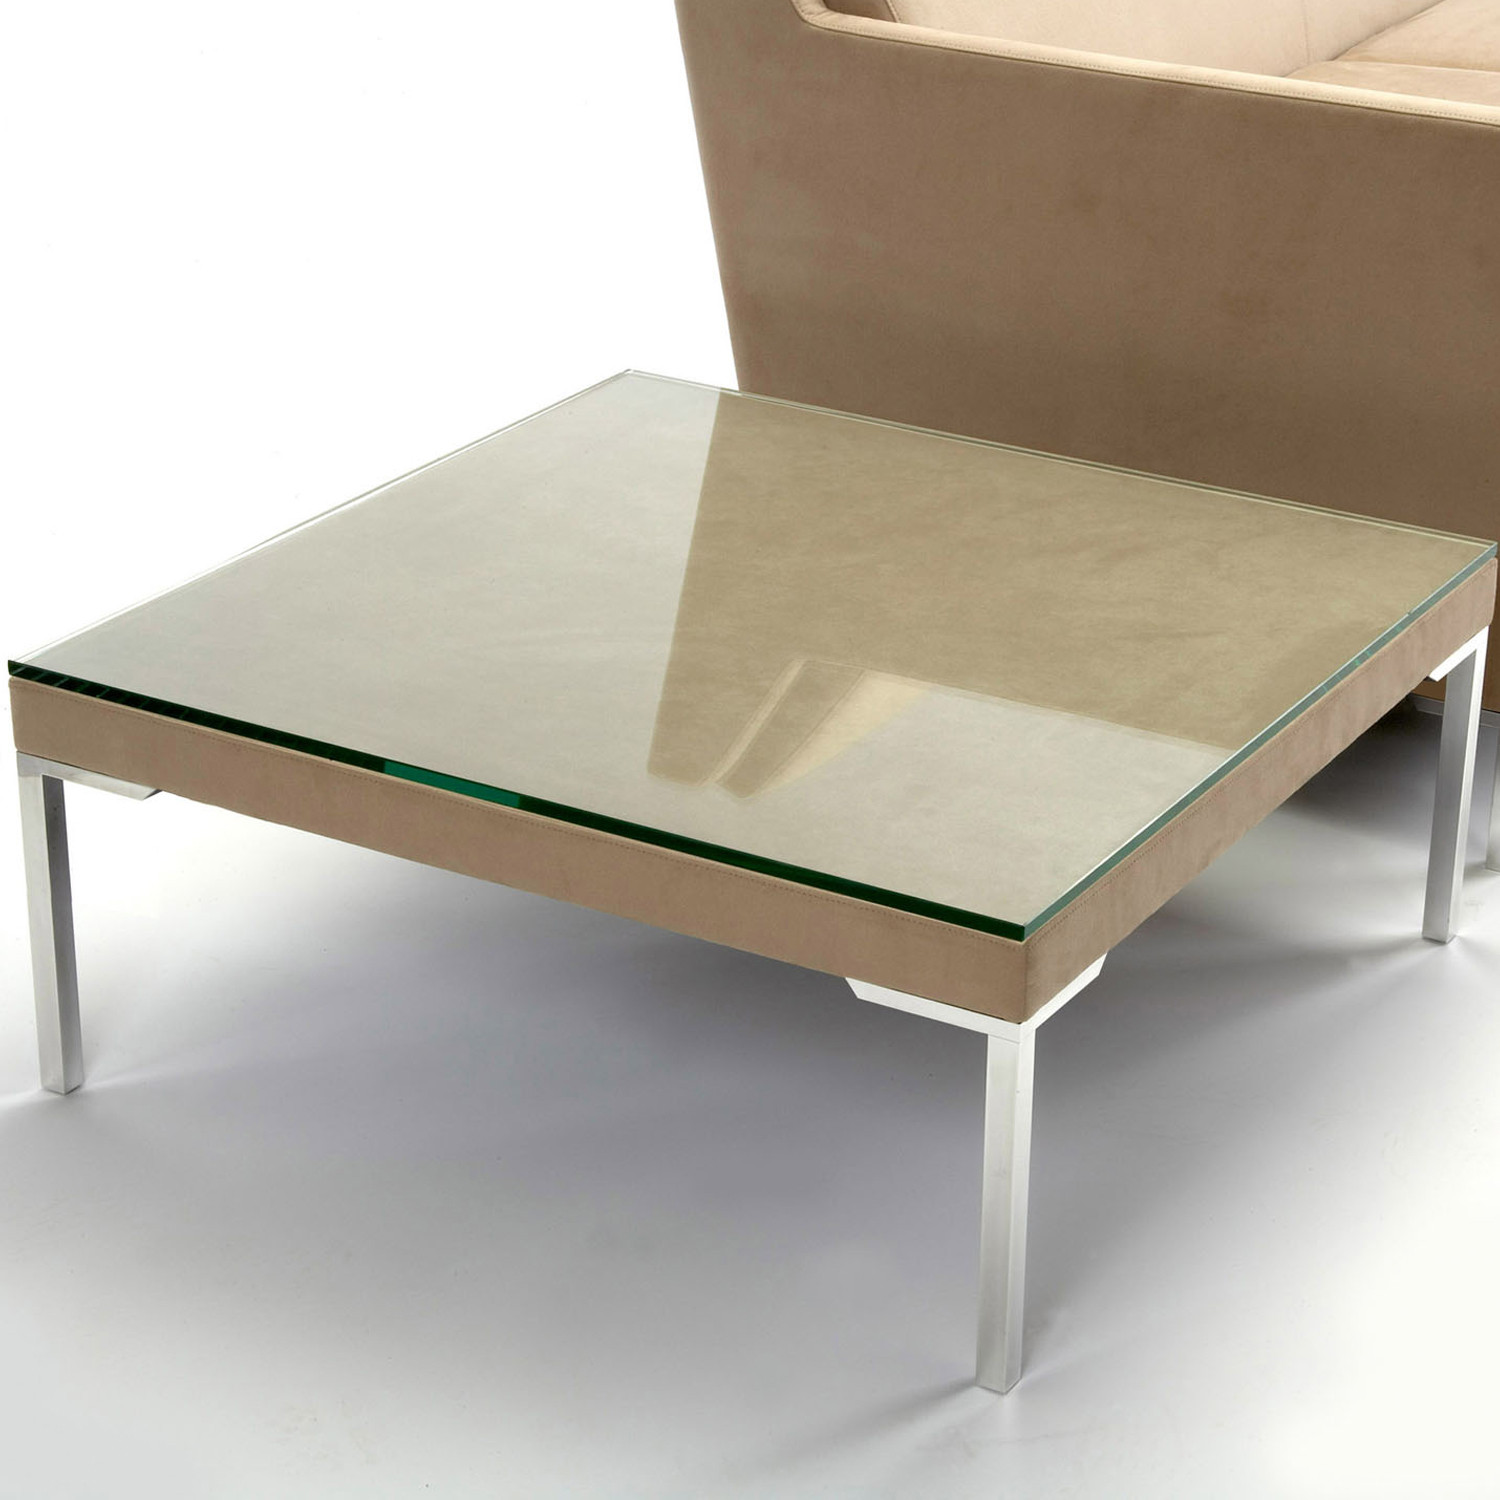 Aspect Sofa with Coffee Table